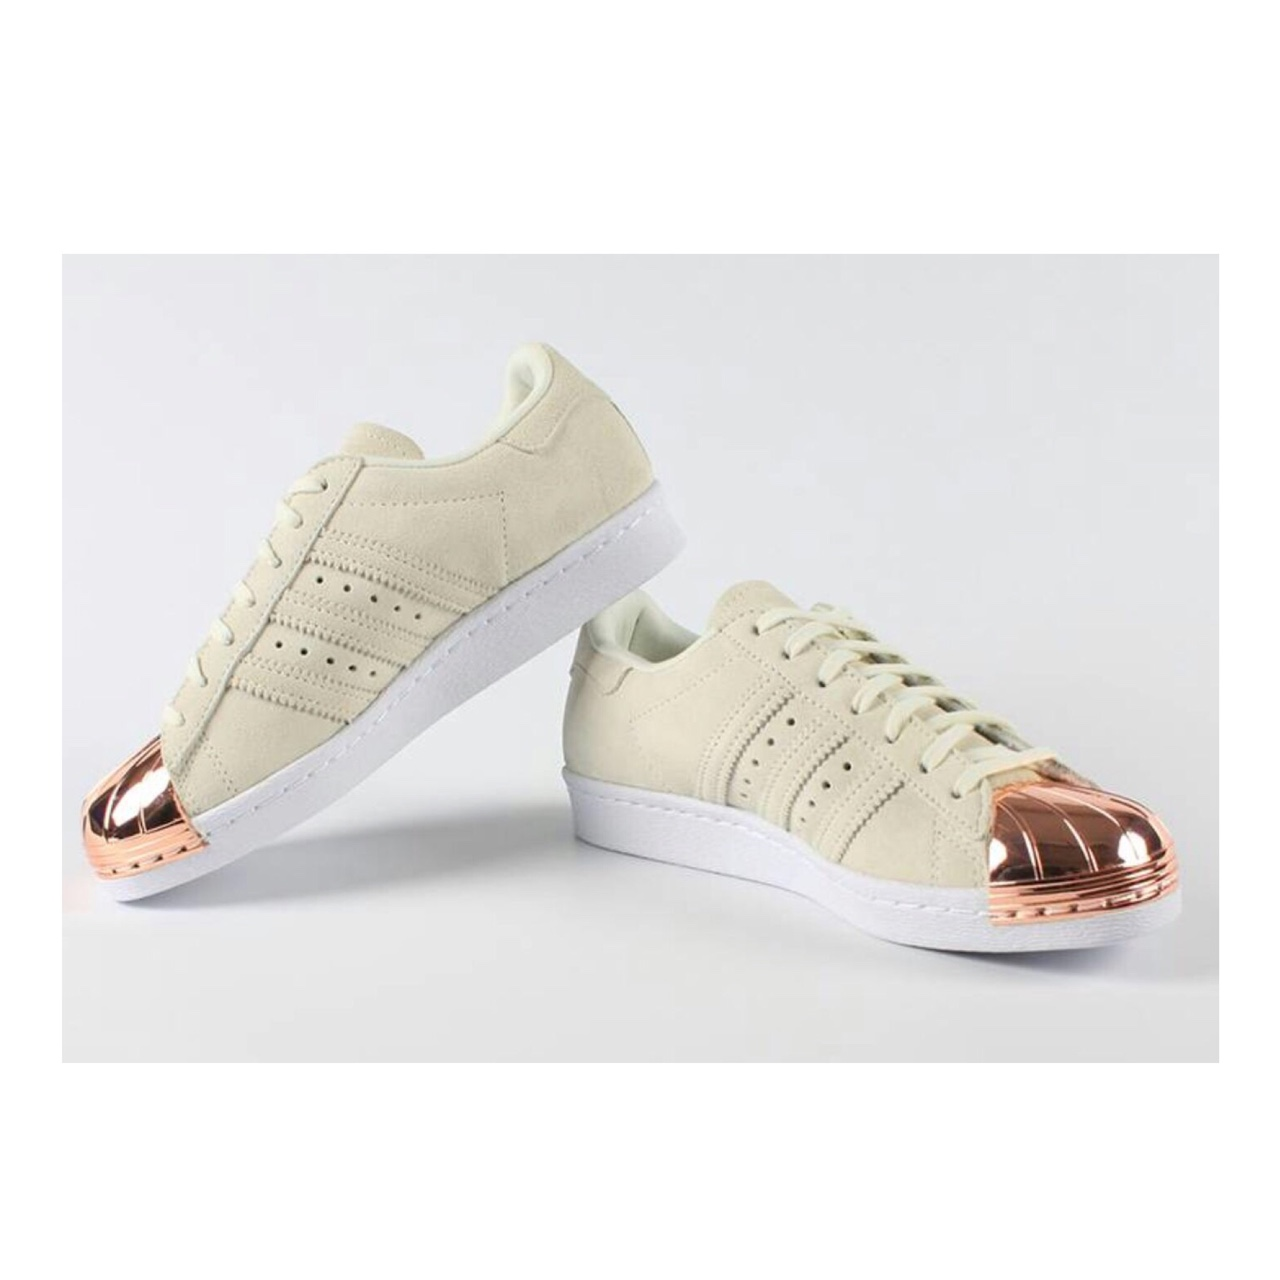 adidas superstar 80s rose gold metal toe